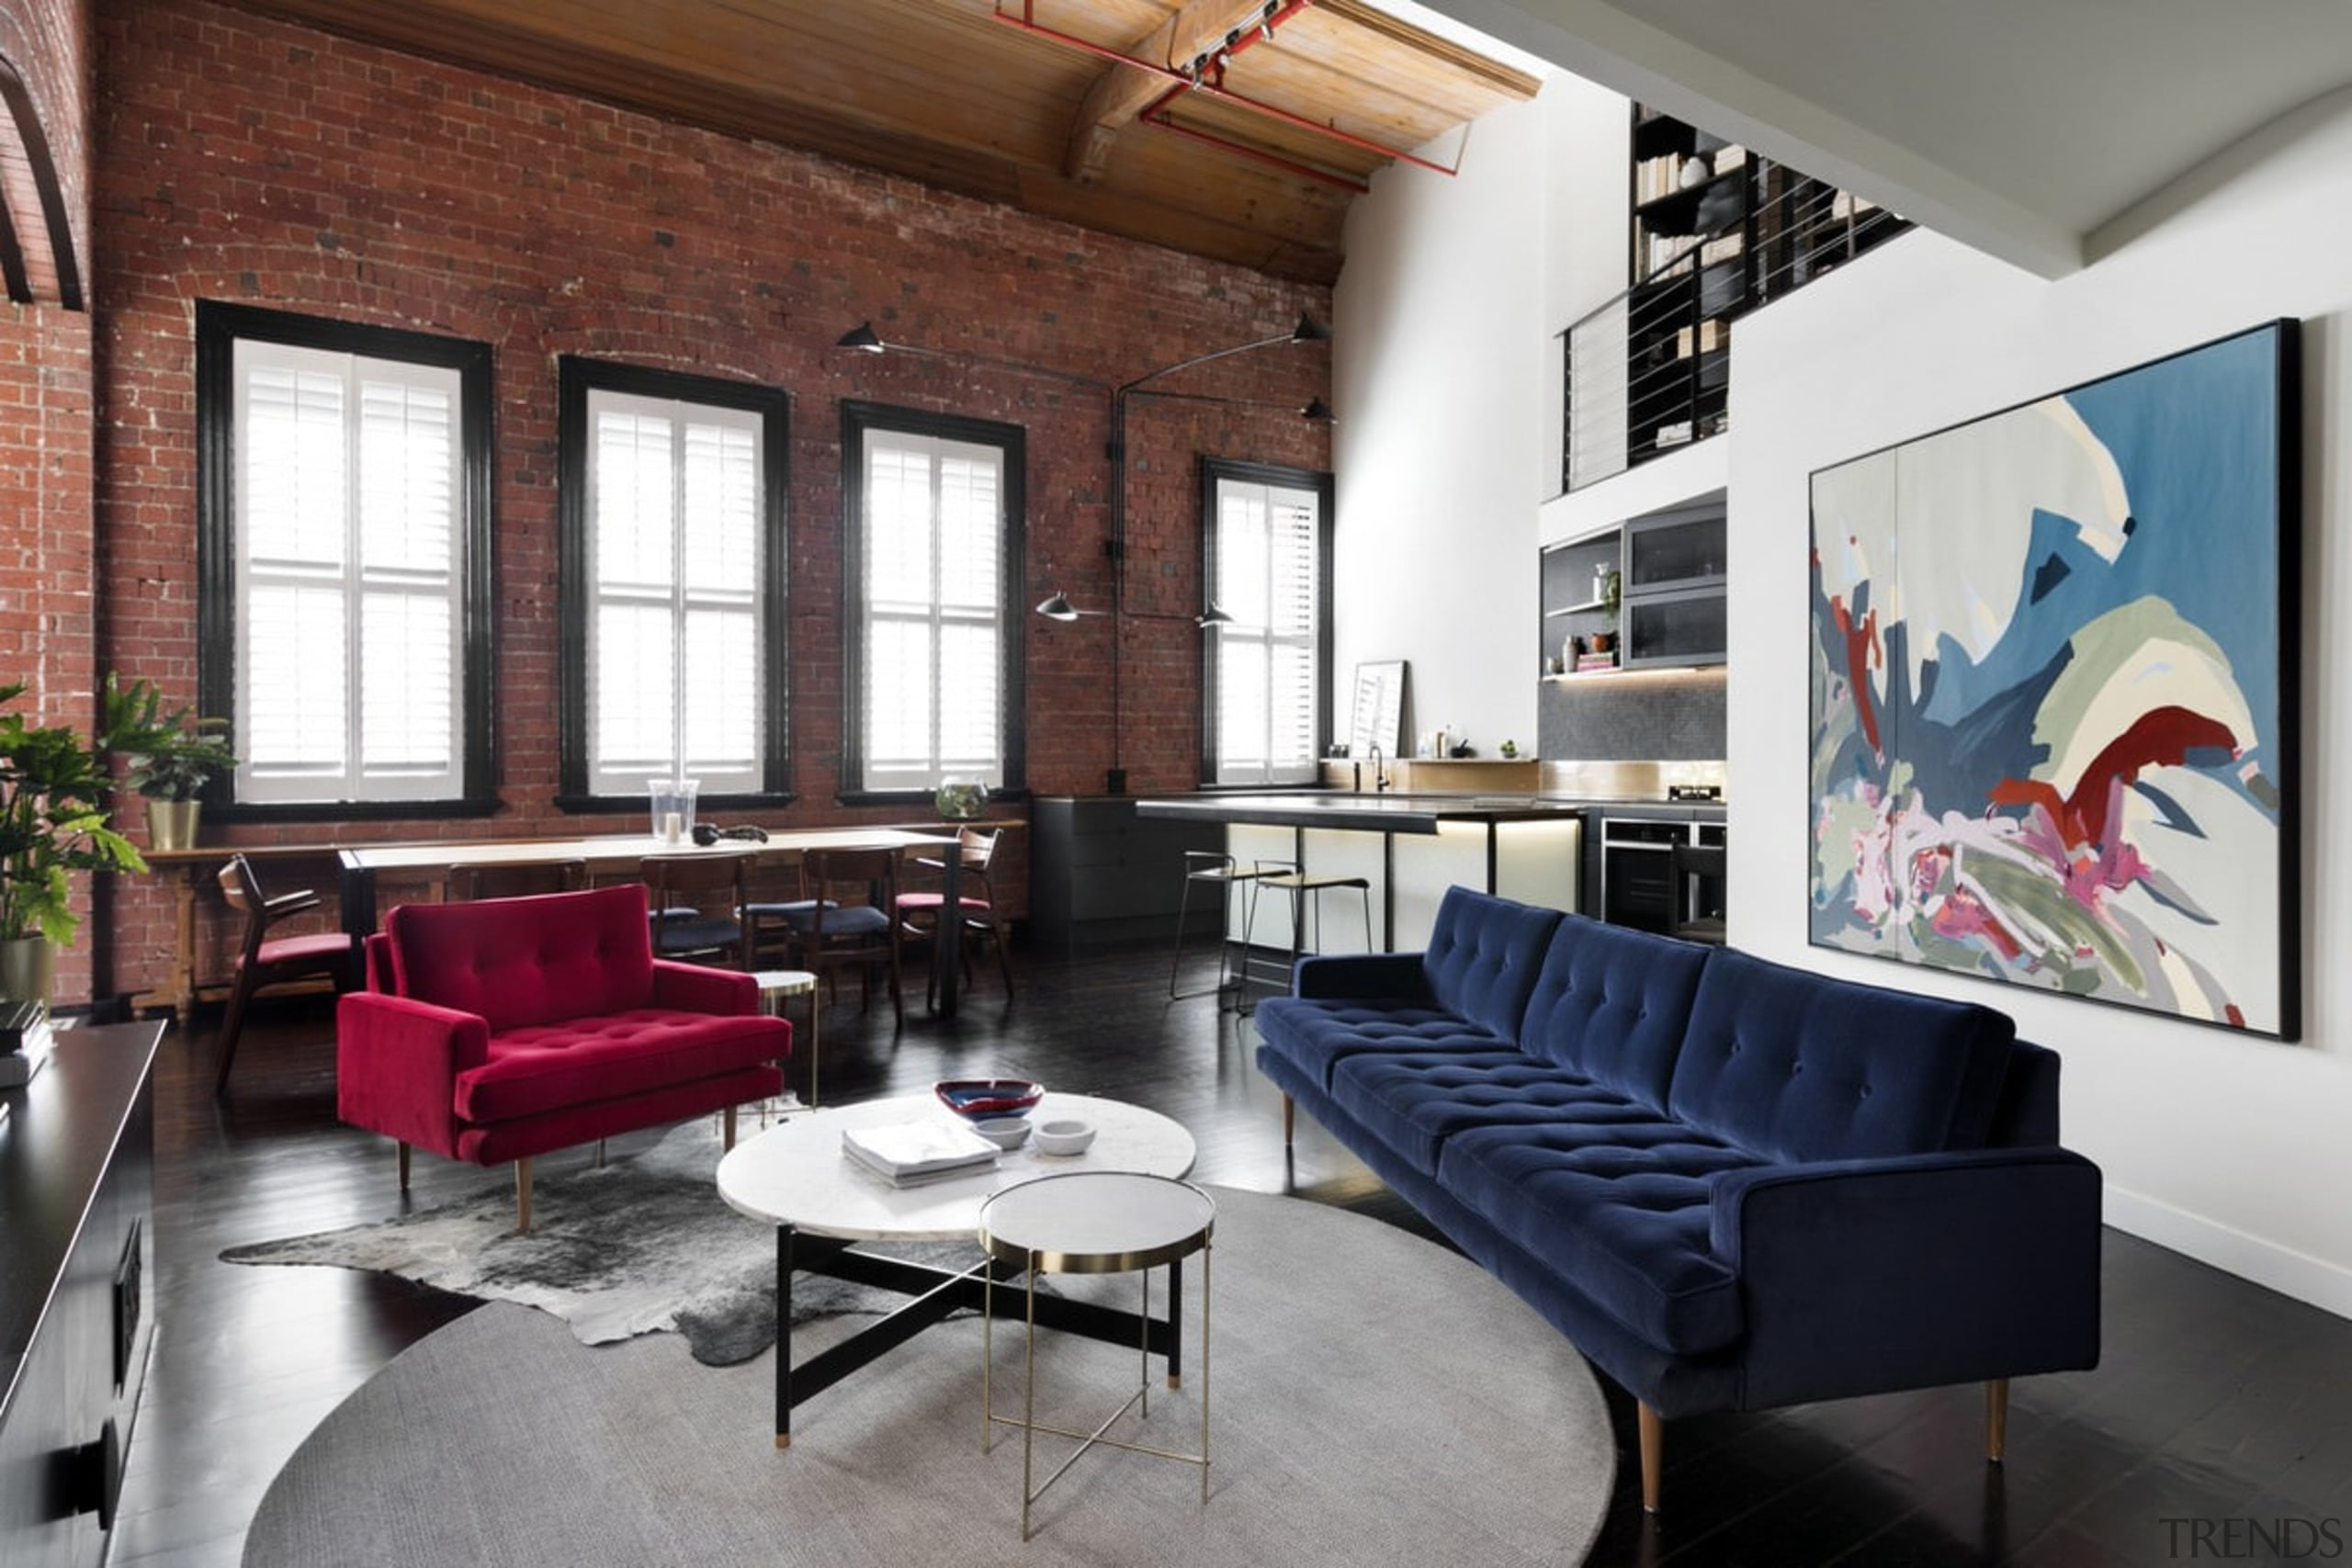 You can easily move from the lounge furniture, interior design, living room, loft, table, white